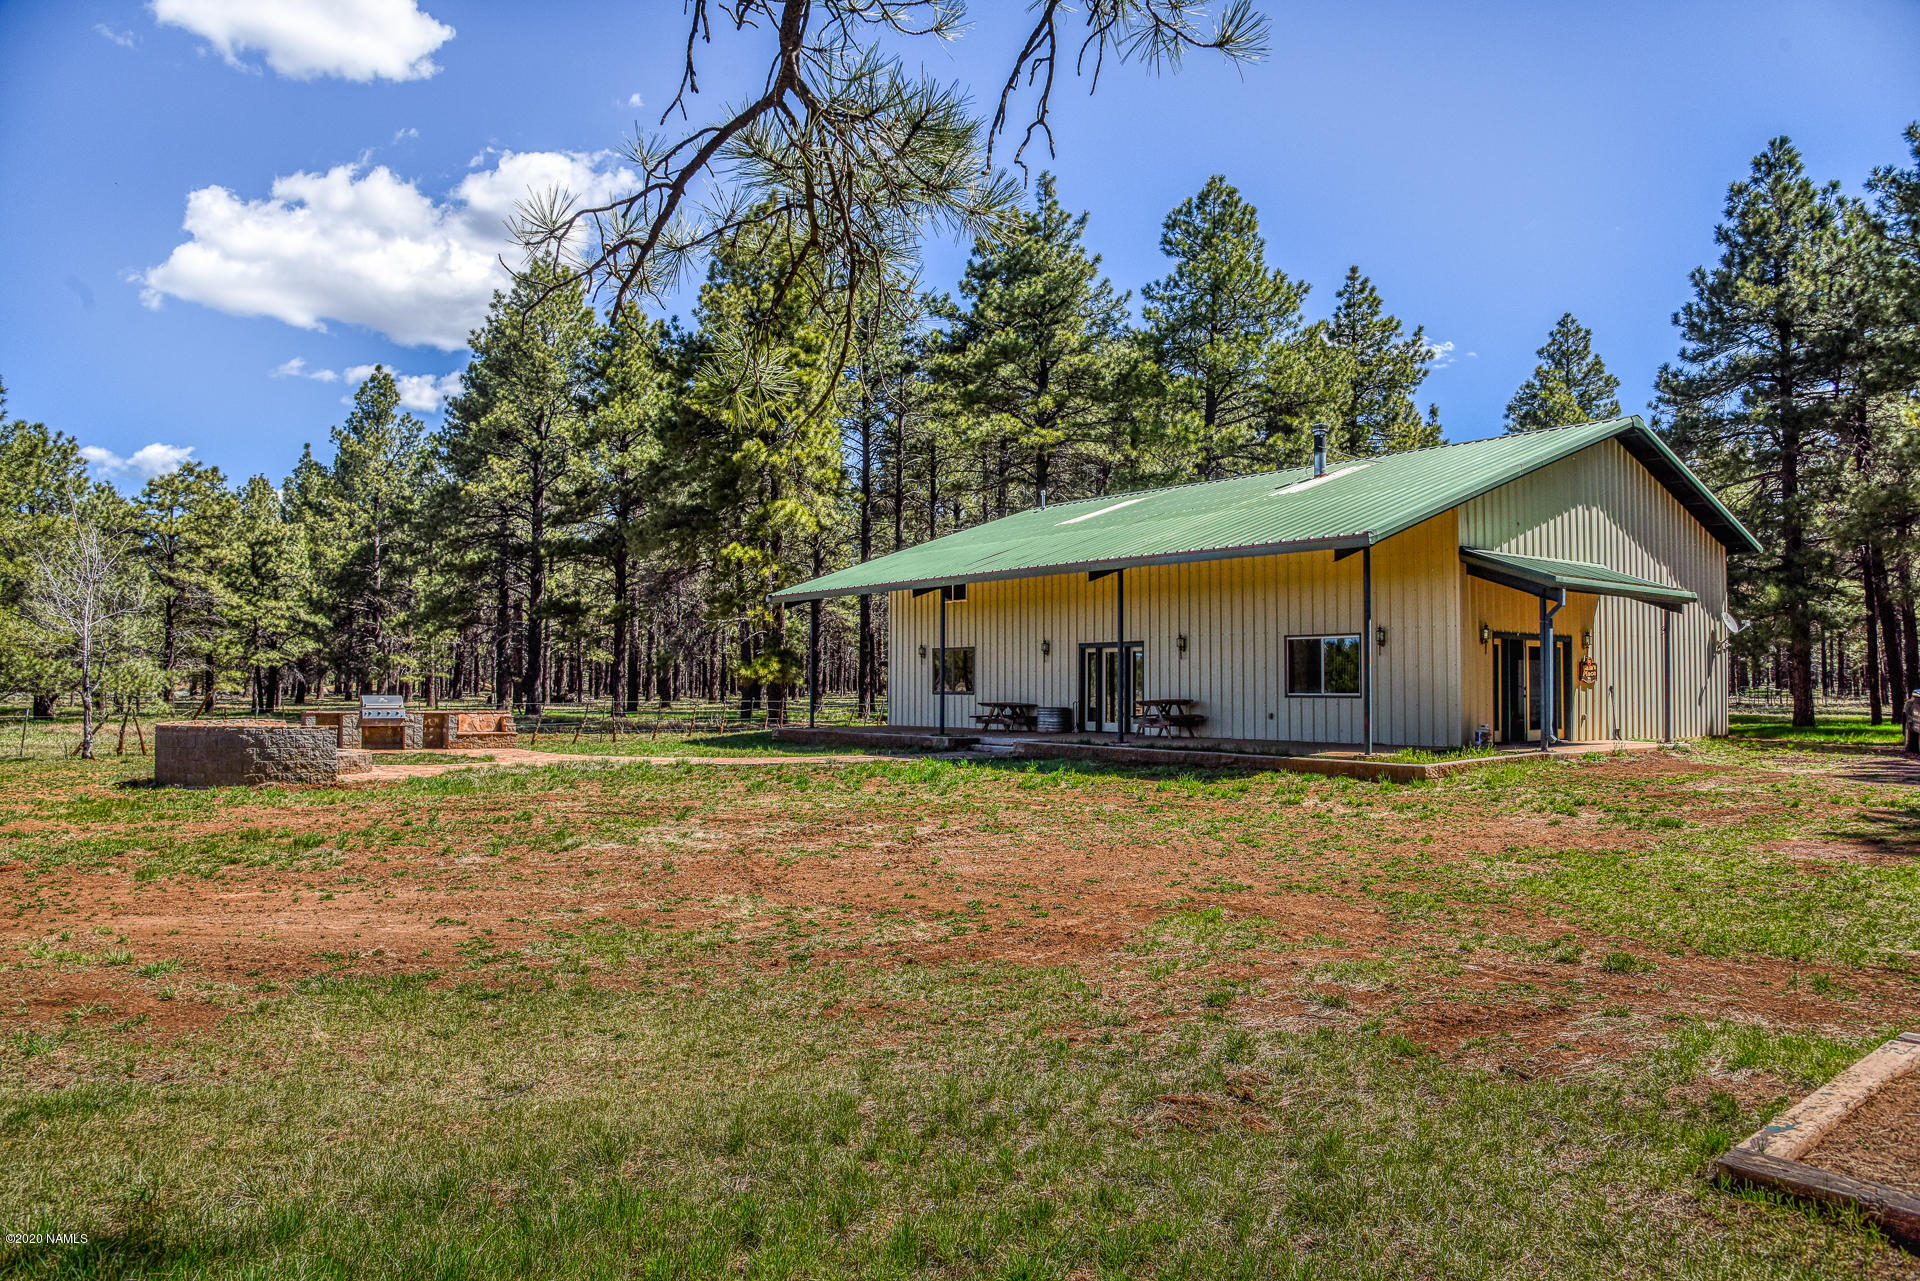 Photo of 12363 Bluebird Meadow Rd Road, Parks, AZ 86018